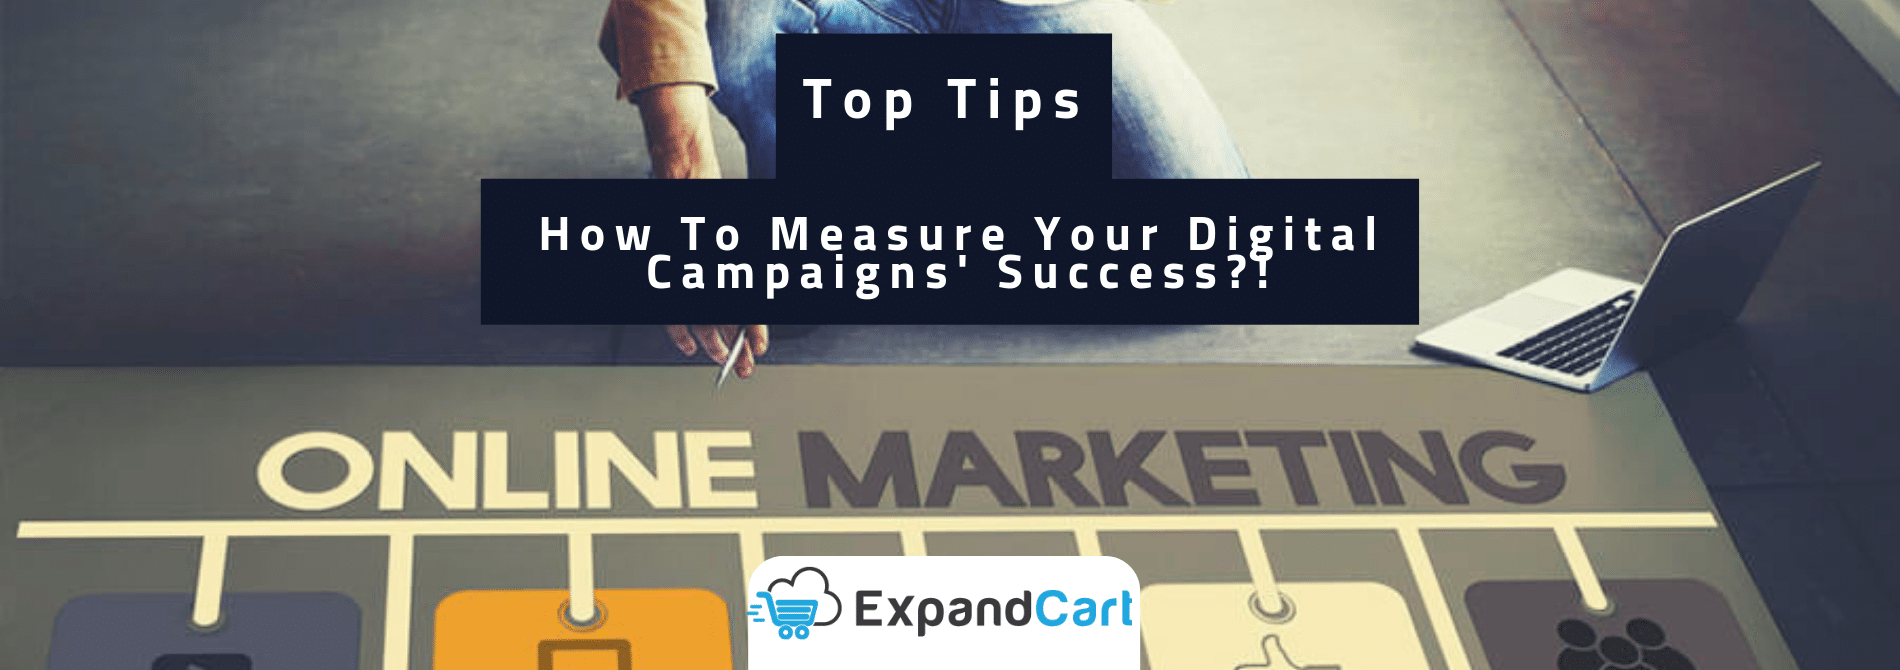 How To Measure Your Digital Campaigns' Success?!